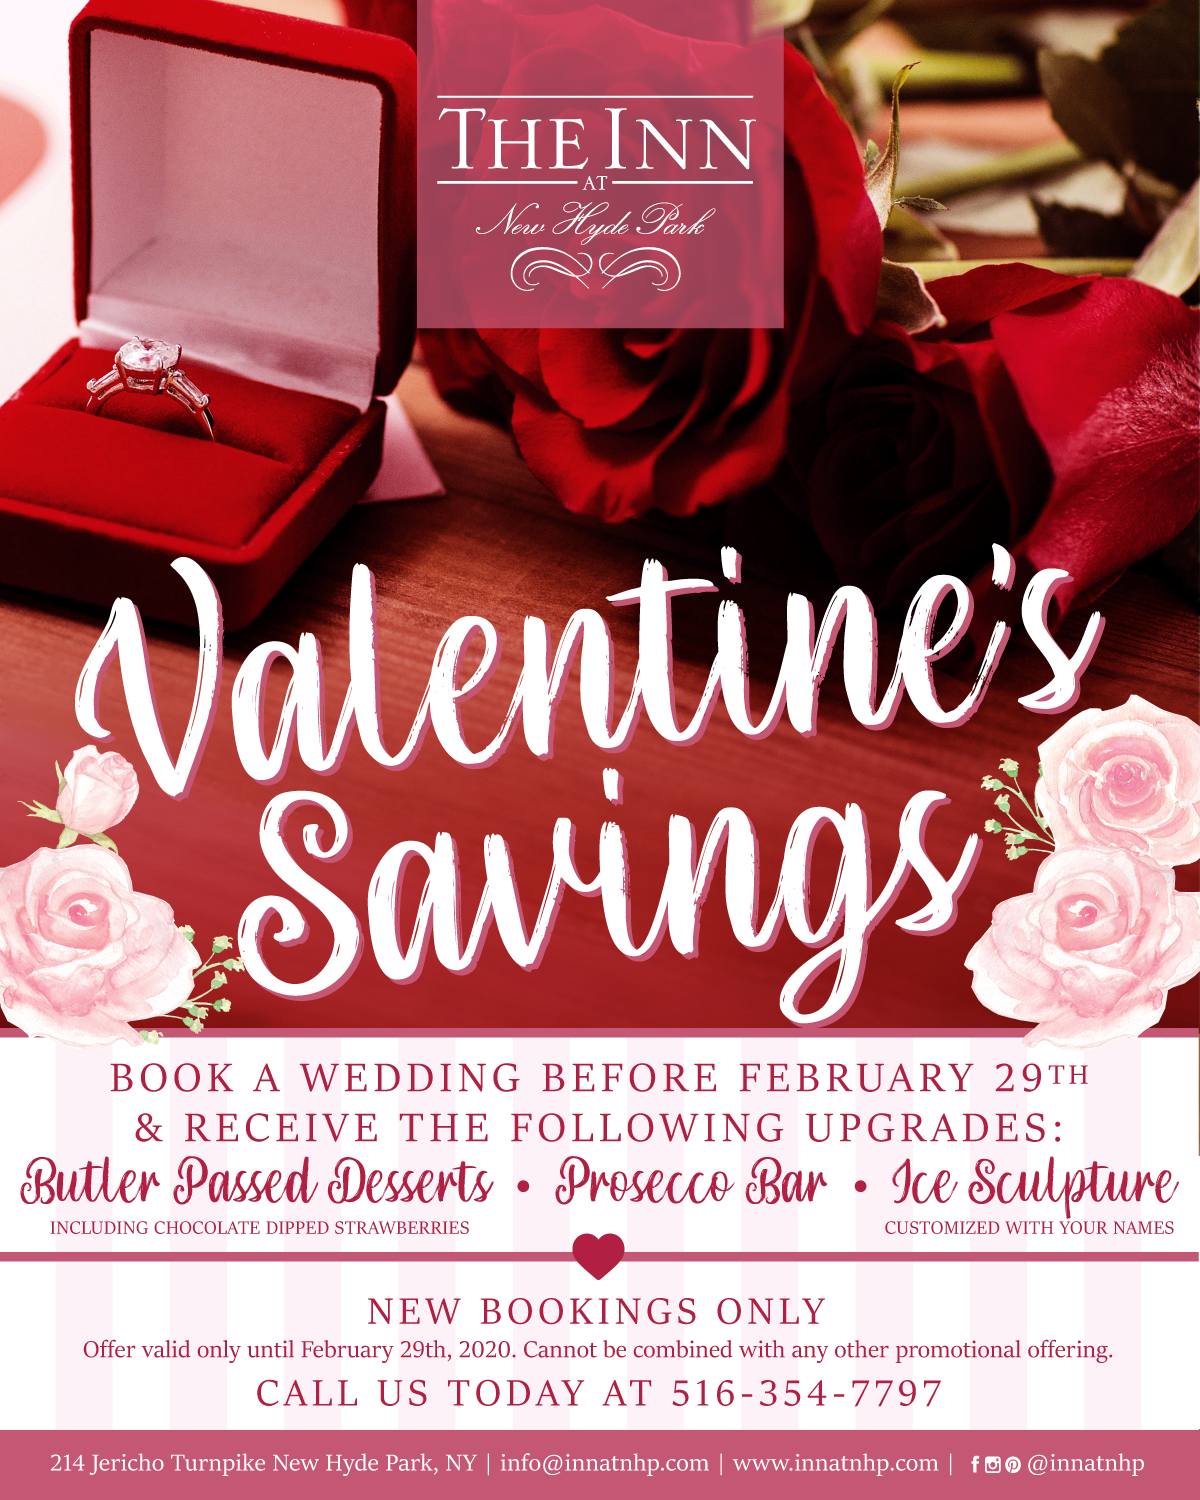 Valentine's Savings